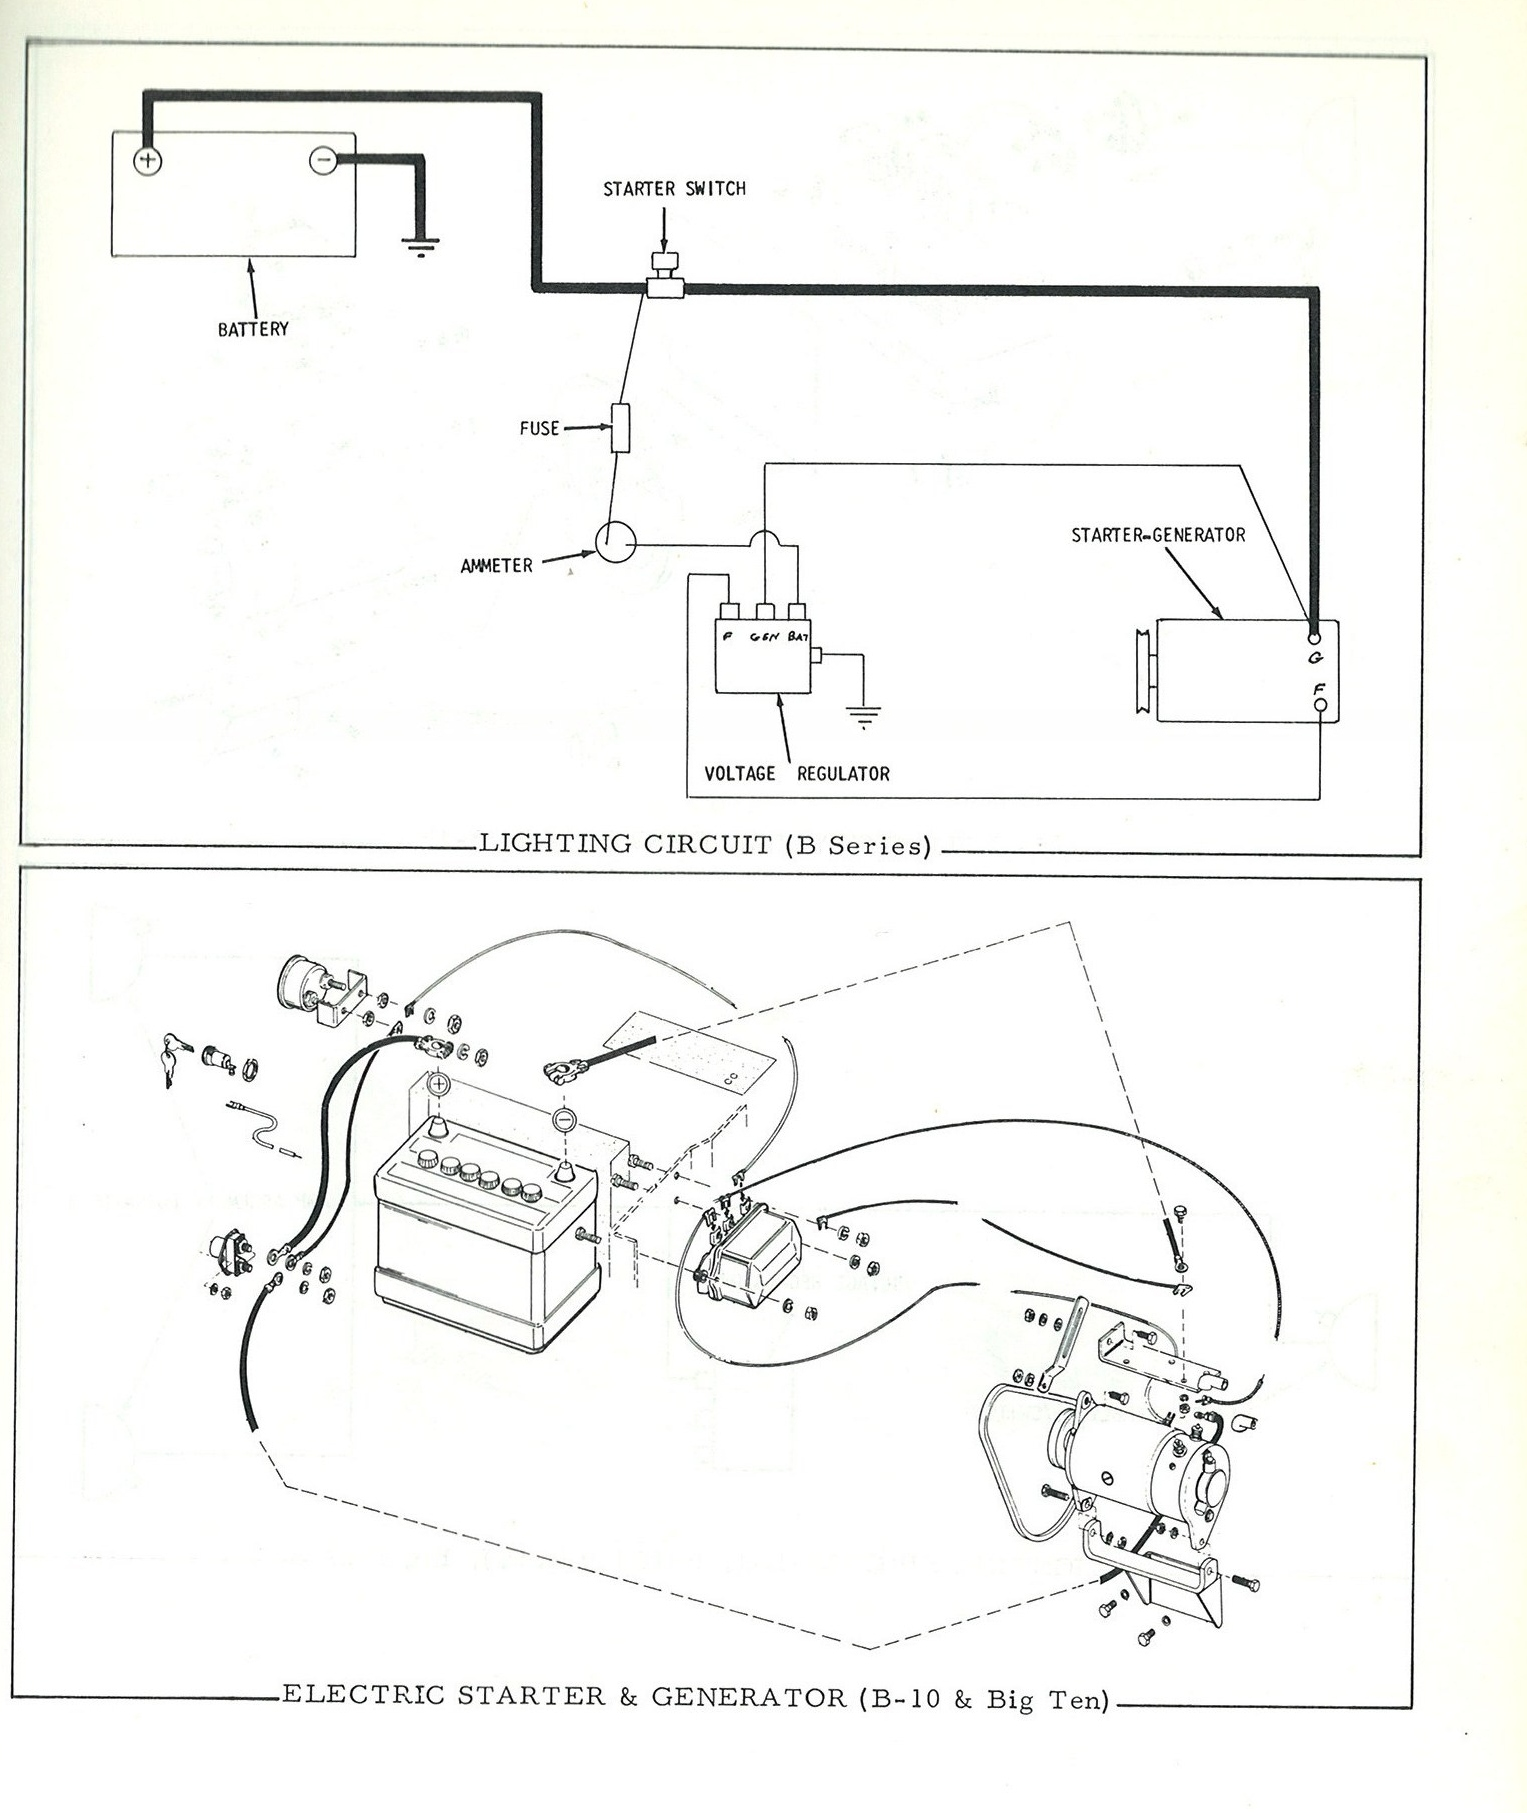 Allis Chalmers Wc Wiring Diagram - Mitsubishi 4g91 Wiring Diagram -  loader.tukune.jeanjaures37.frWiring Diagram Resource